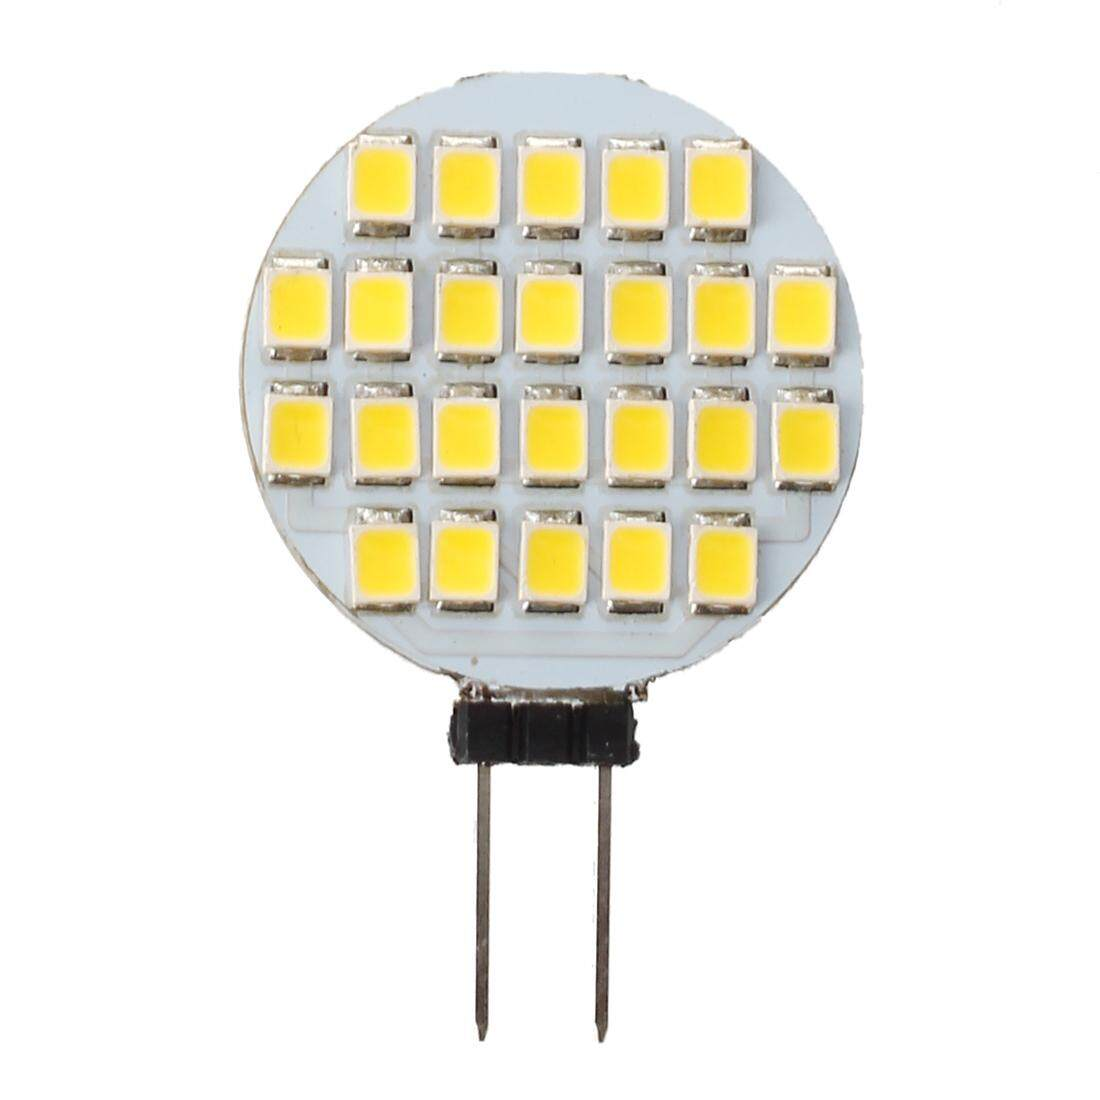 Sell Dc32 24 12v Cheapest Best Quality My Store About White 36 Led Circuit Board Rv Boat Light Bulb Ba9s New Myr 7